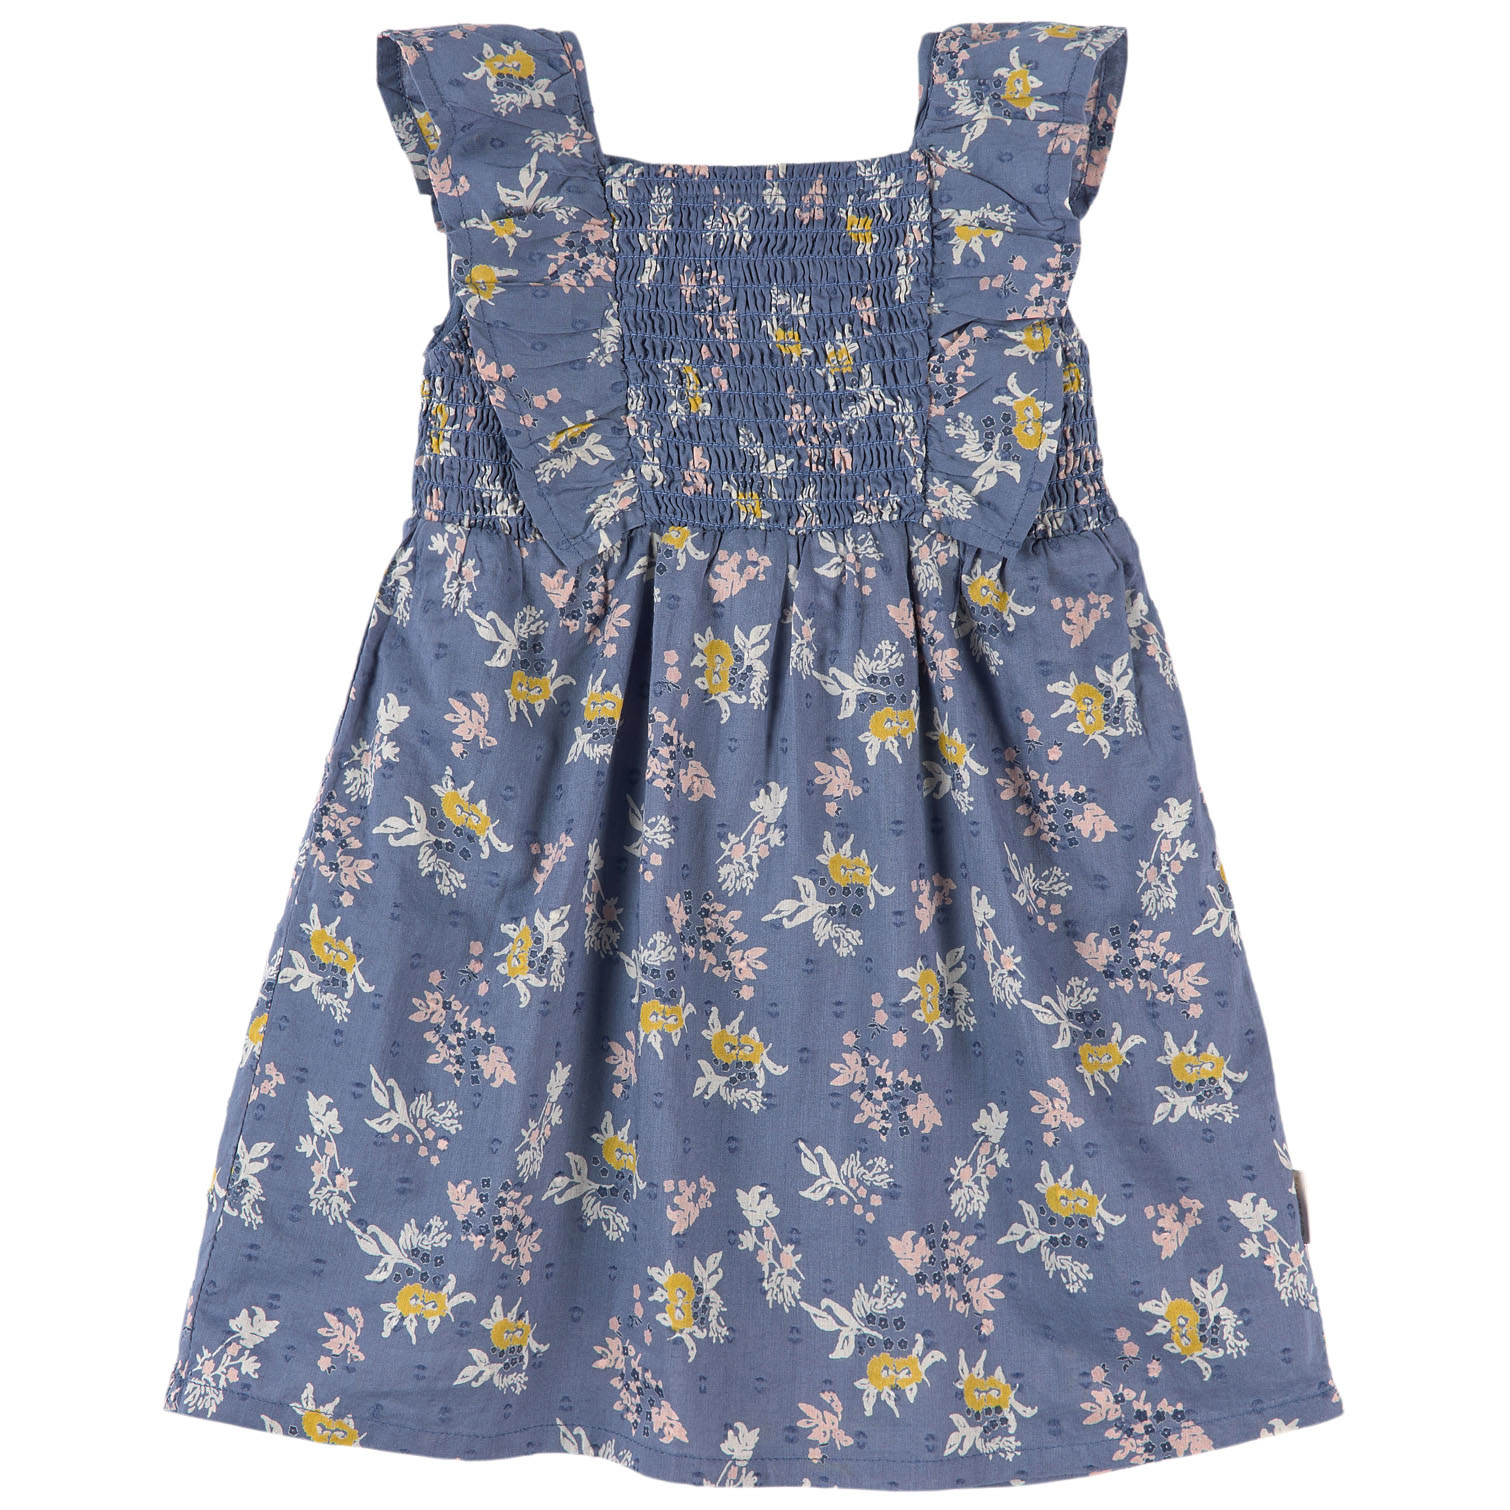 Cotton Dress with Smocked Bodice - Blue Floral